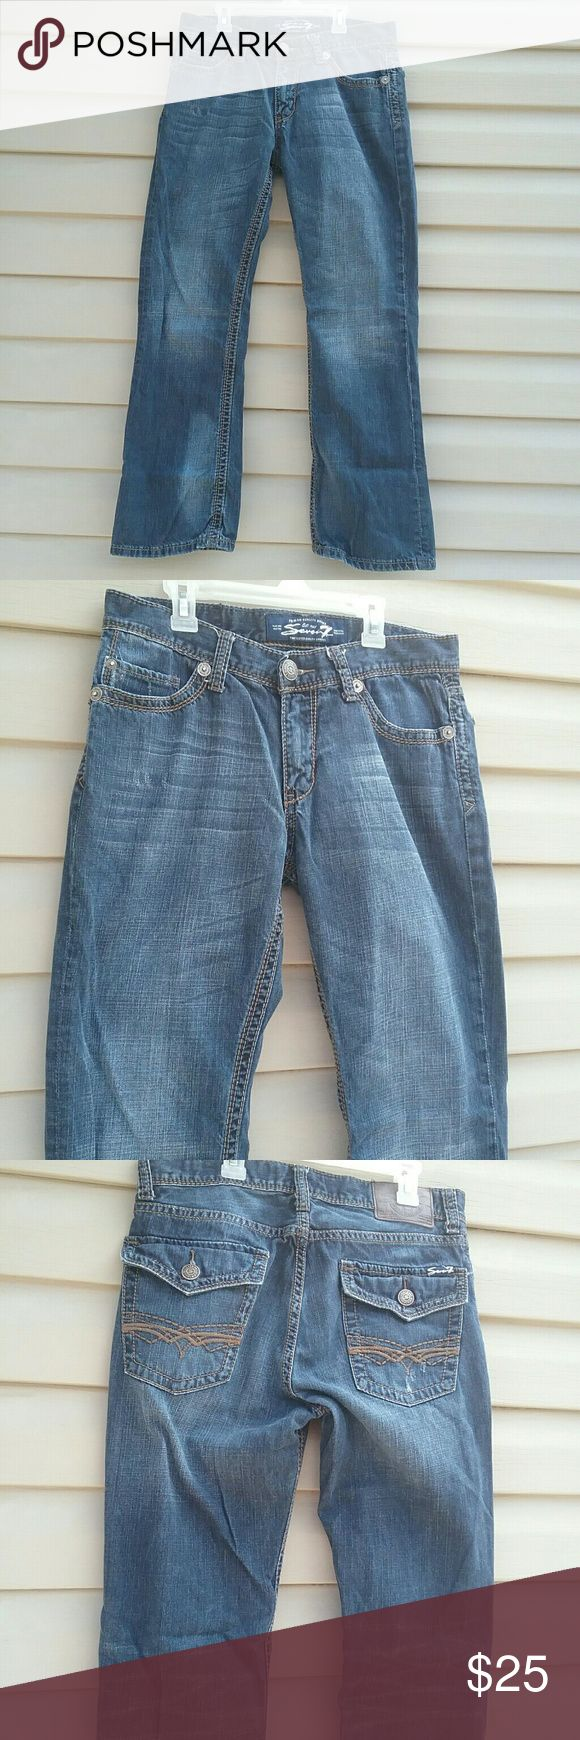 Mens Seven 7 jeans Mens Seven7 jeans excellent used condition worn a few times size 32/30 with back flam pockets  waist is 32 in. Leg inseam is 28.5 in. Seven7 Jeans Bootcut